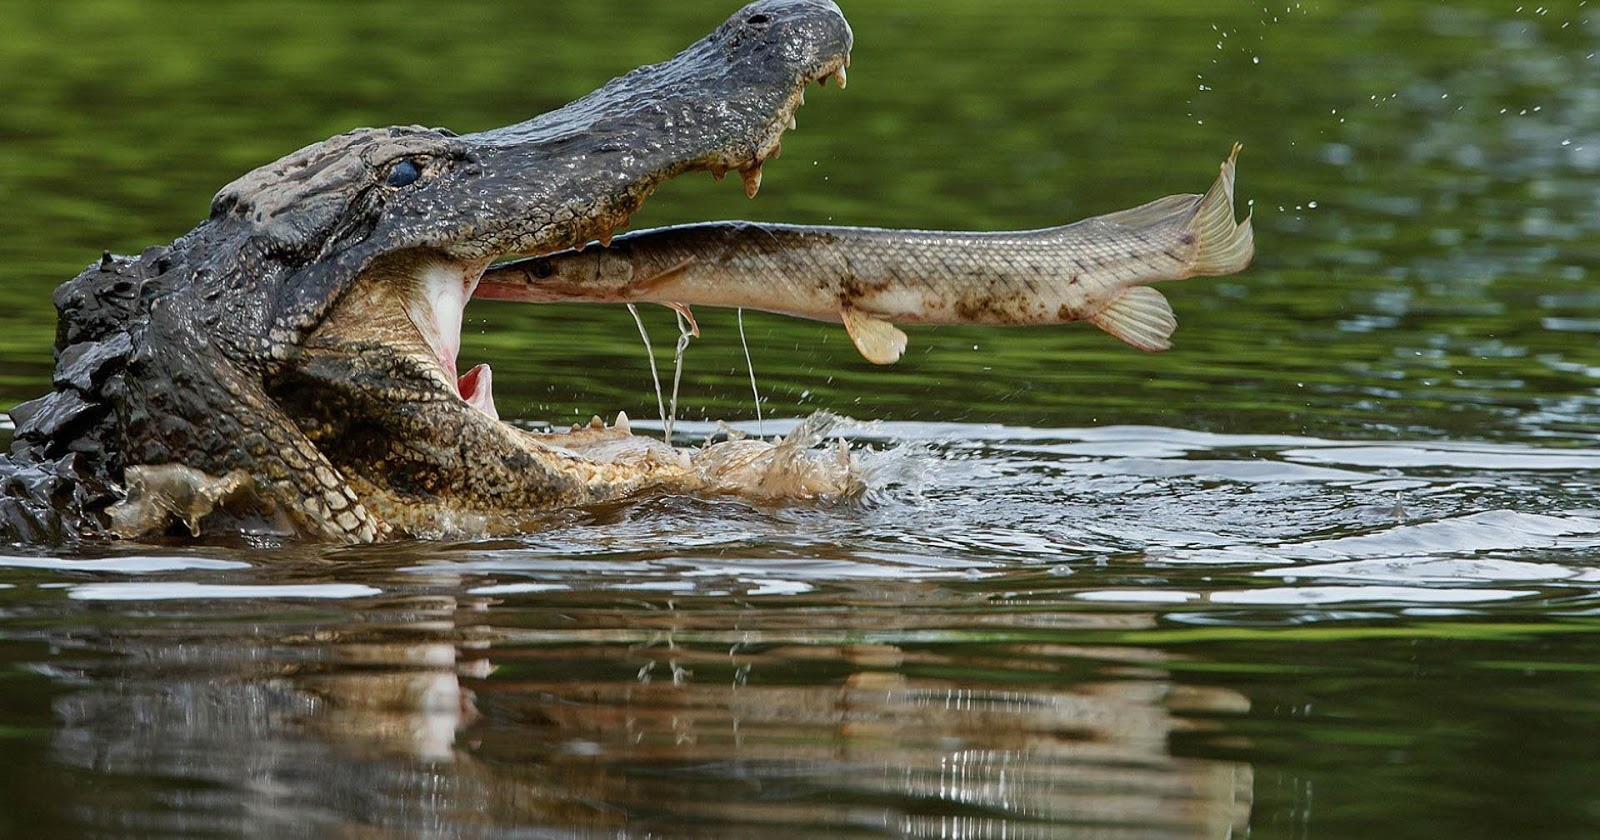 Alligator Wallpapers and Background Images   stmednet 1600x840